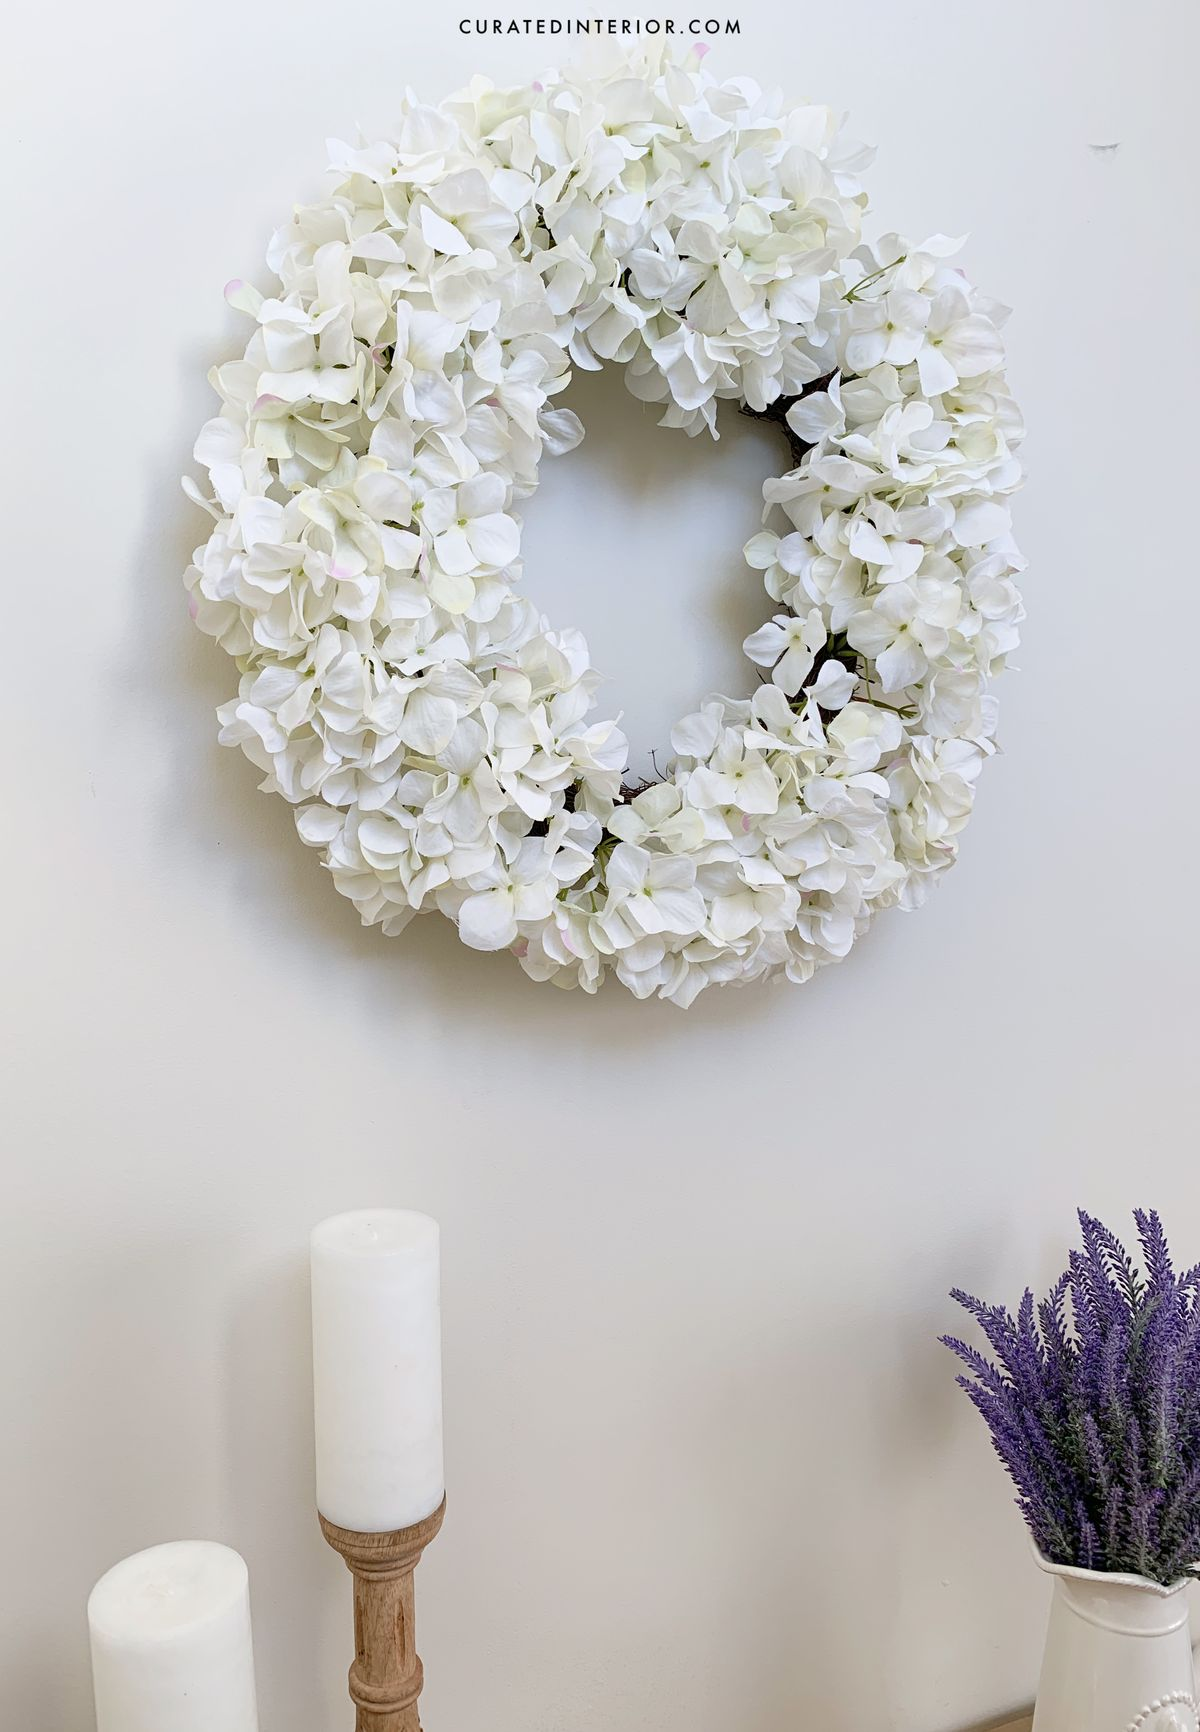 French Country Floral Wreath at Entryway